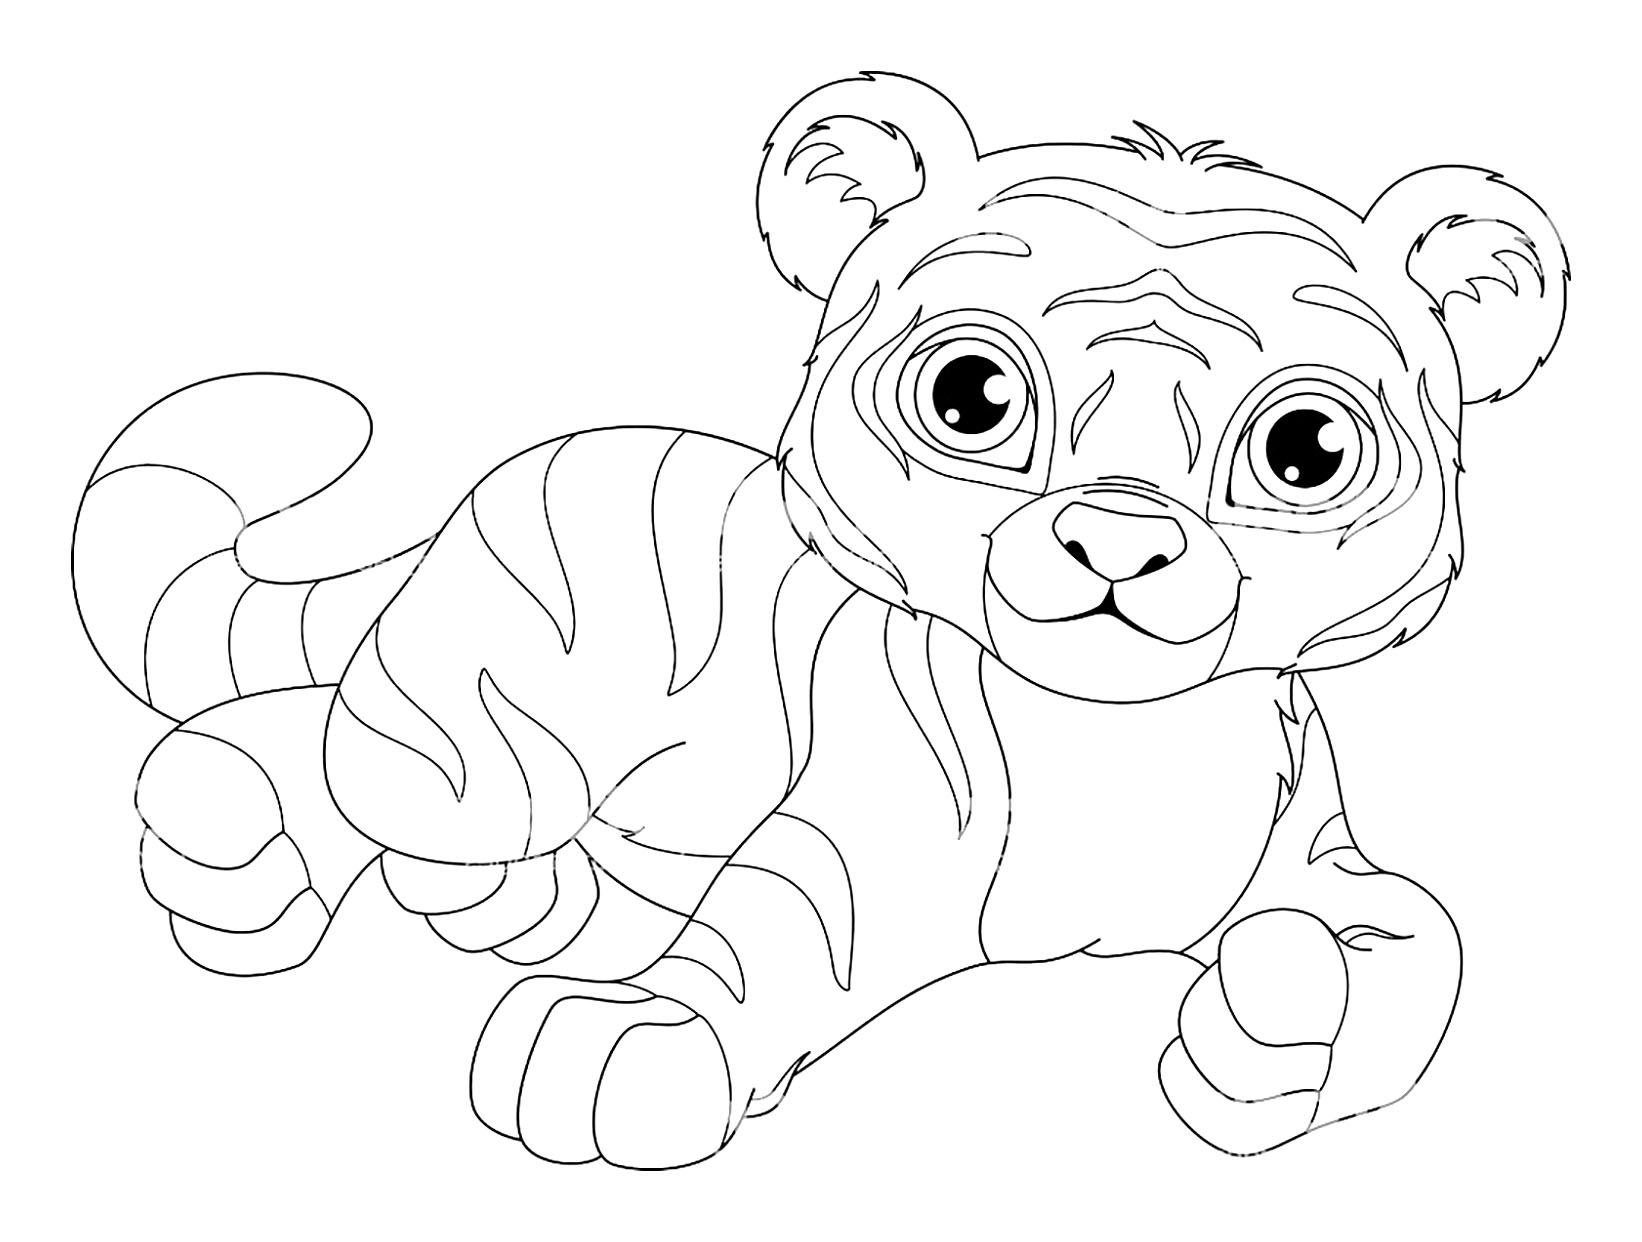 Tigers to color for kids - Tigers Kids Coloring Pages